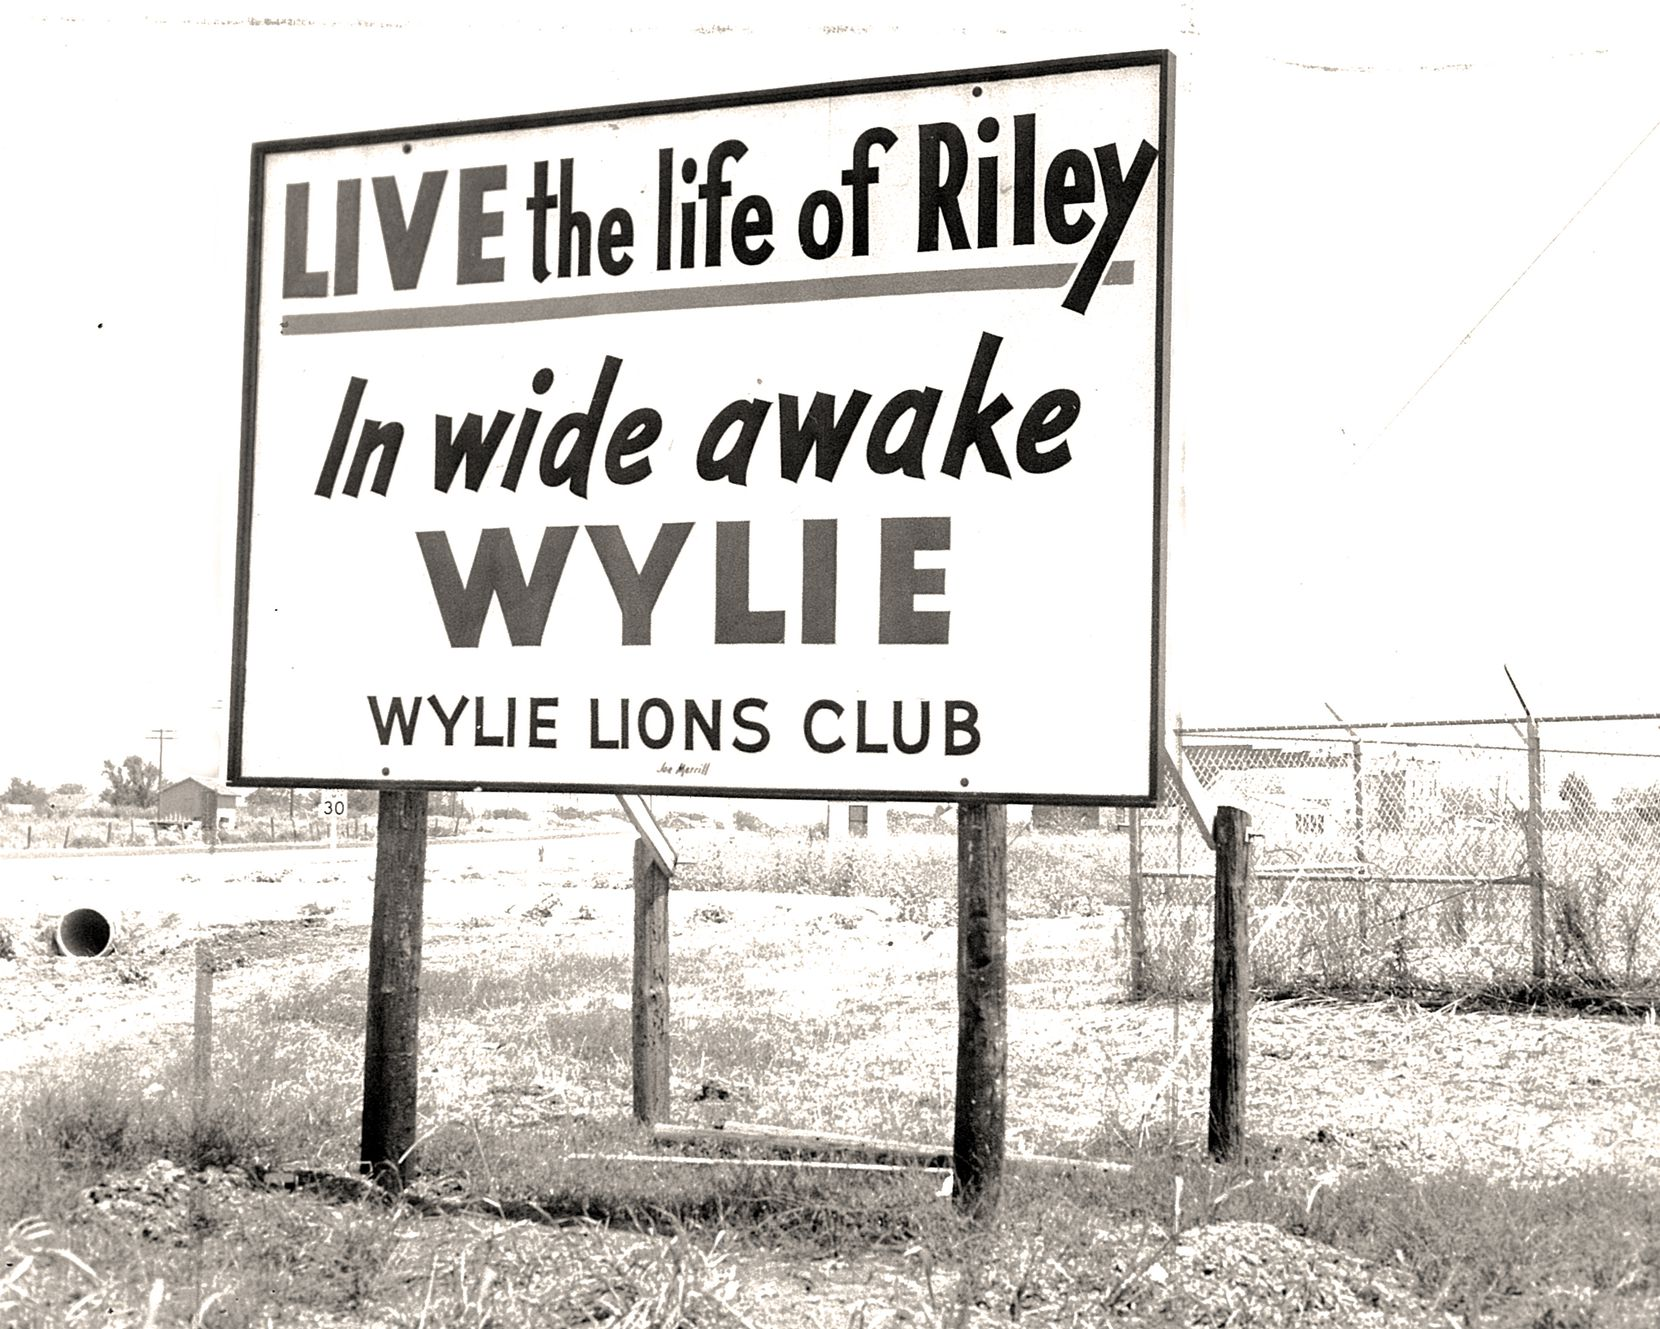 A sign created by the Wylie Lions Club was how the city got its slogan, said Wylie Mayor Eric Hogue.